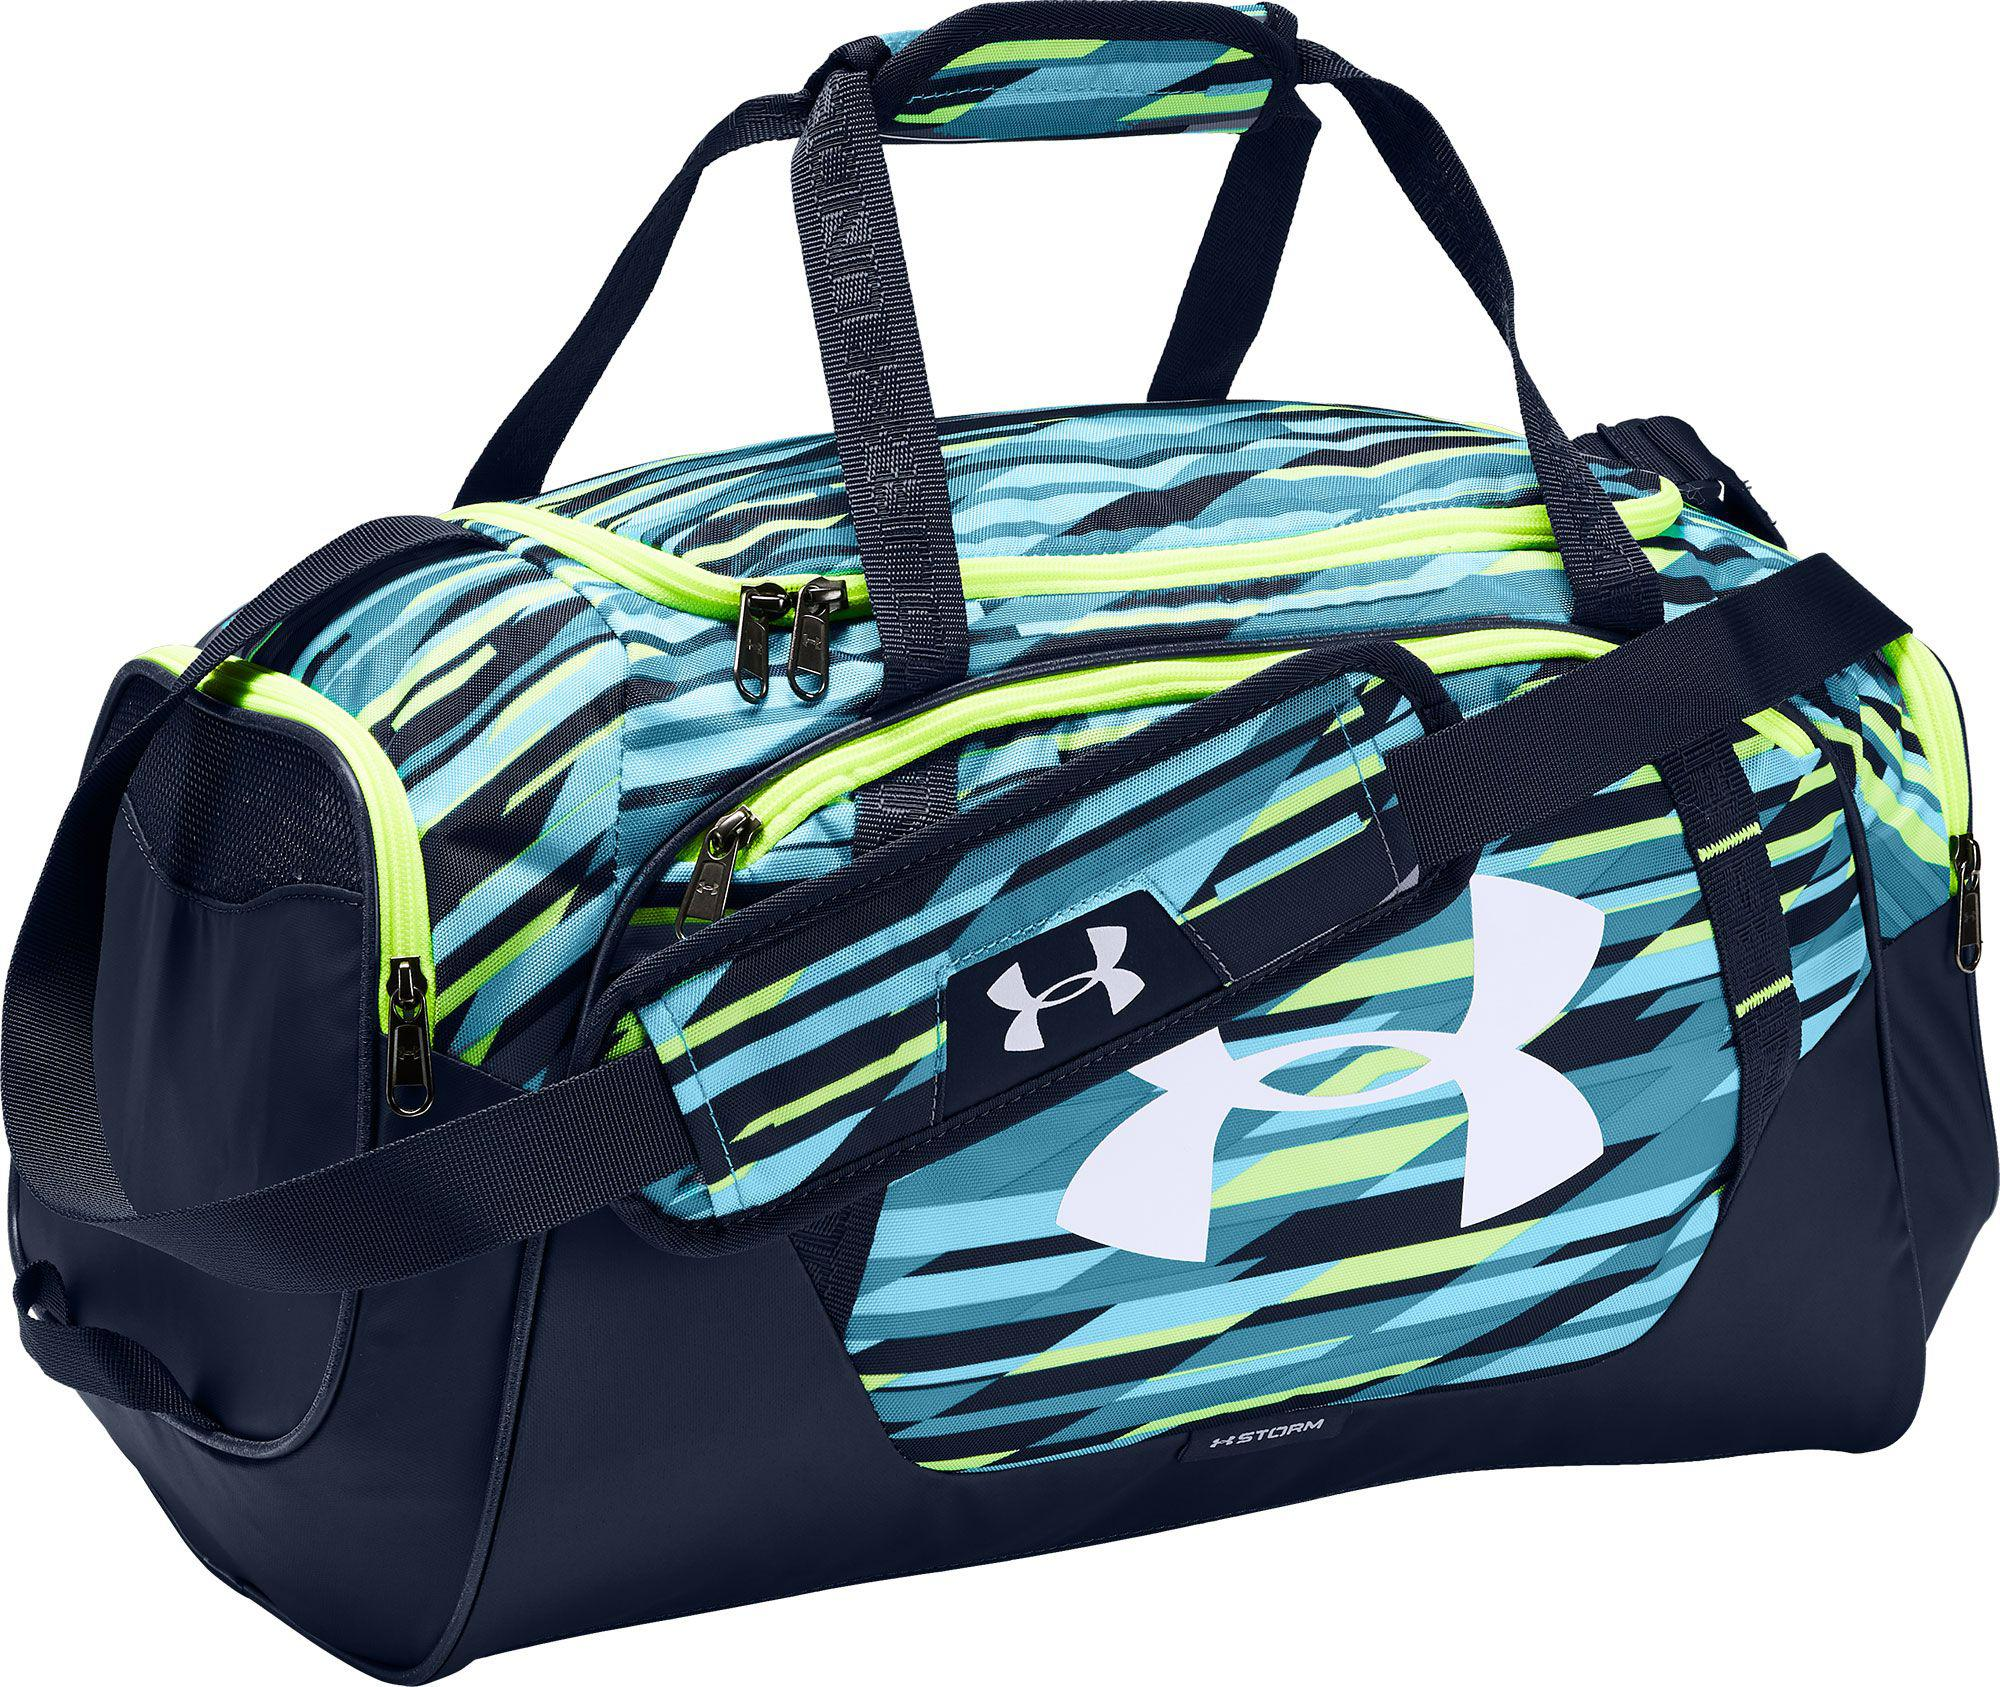 e5330b4d20 Lyst - Under Armour Undeniable 3.0 Small Duffle Bag in Blue for Men